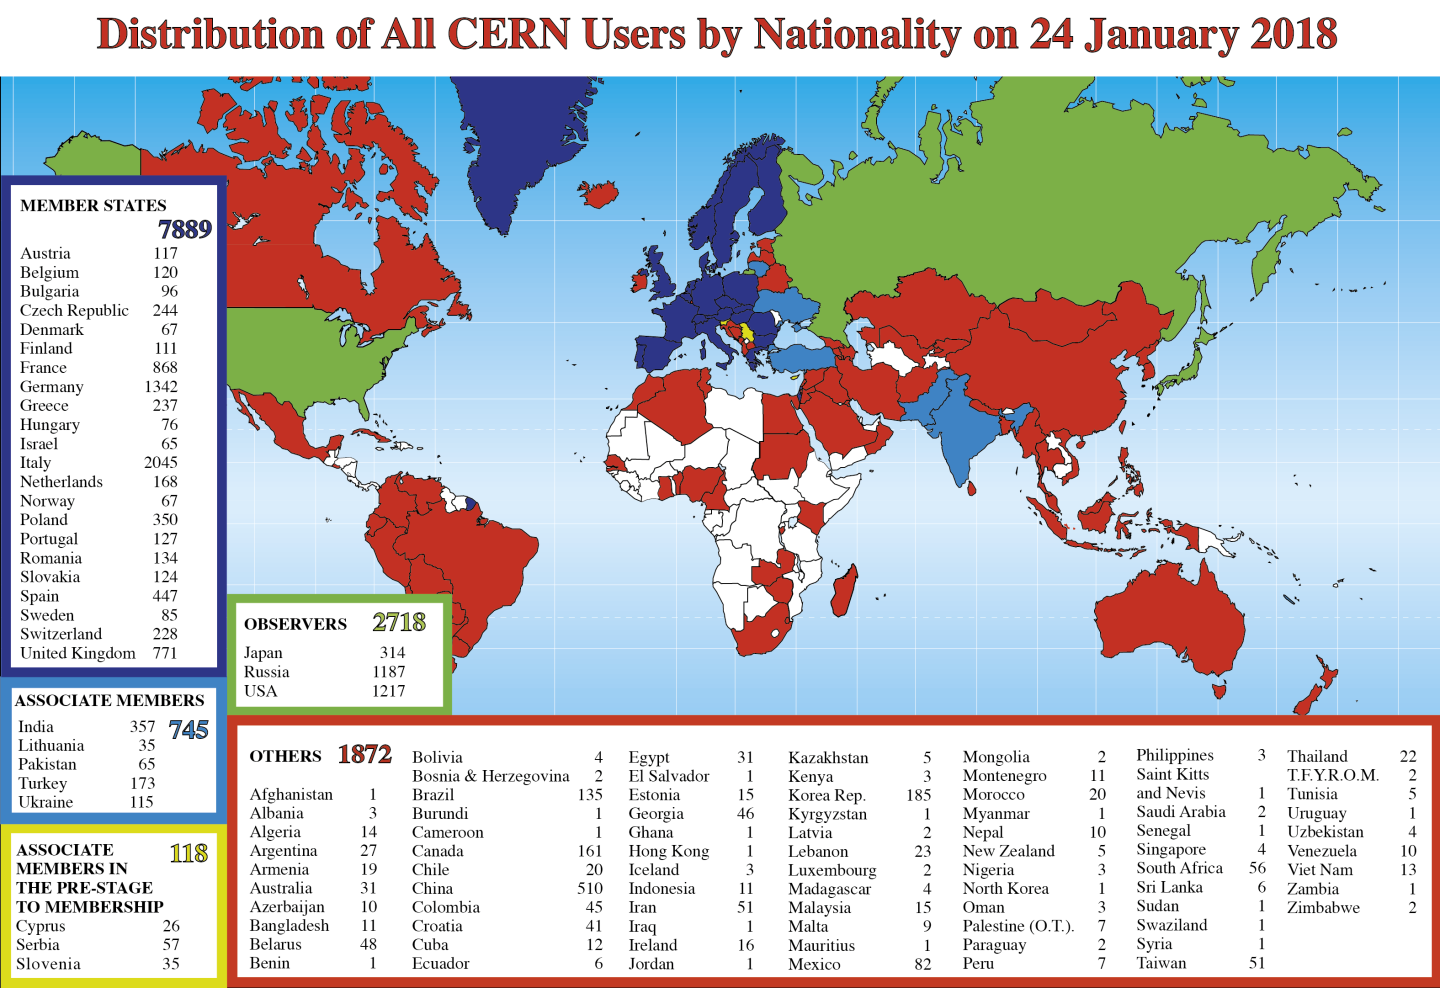 Distribution of all CERN Users by Nationality on 24 January 2018